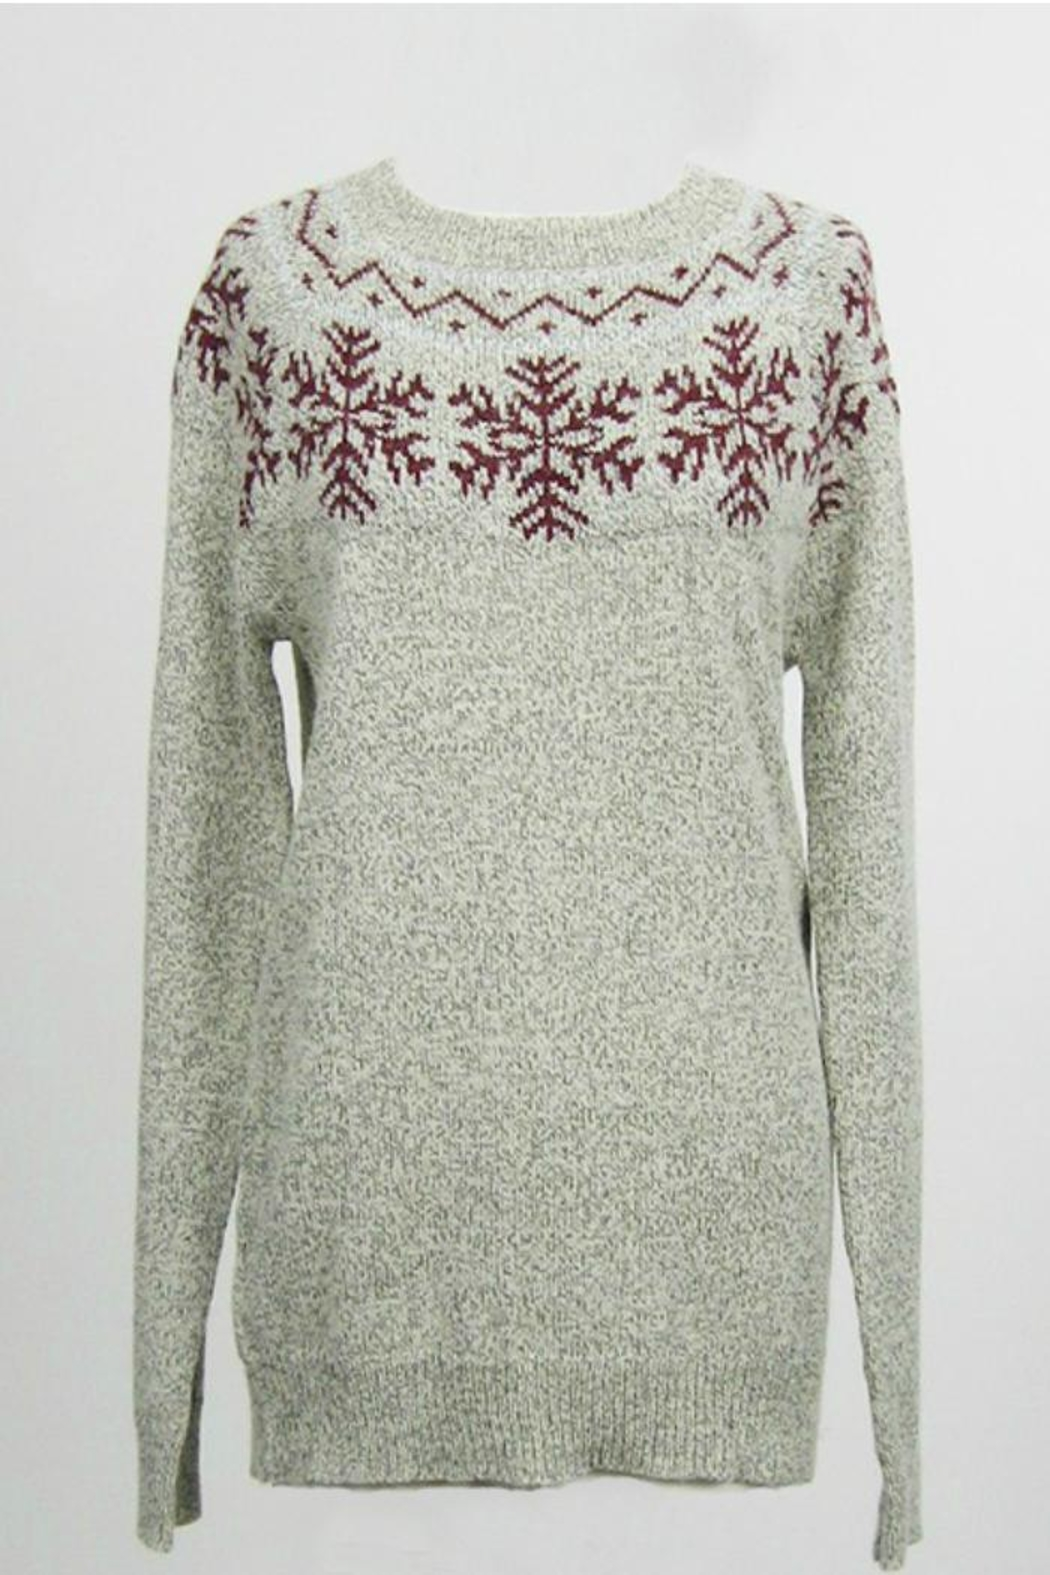 Dreamers Snowflake Pullover Sweater - Main Image